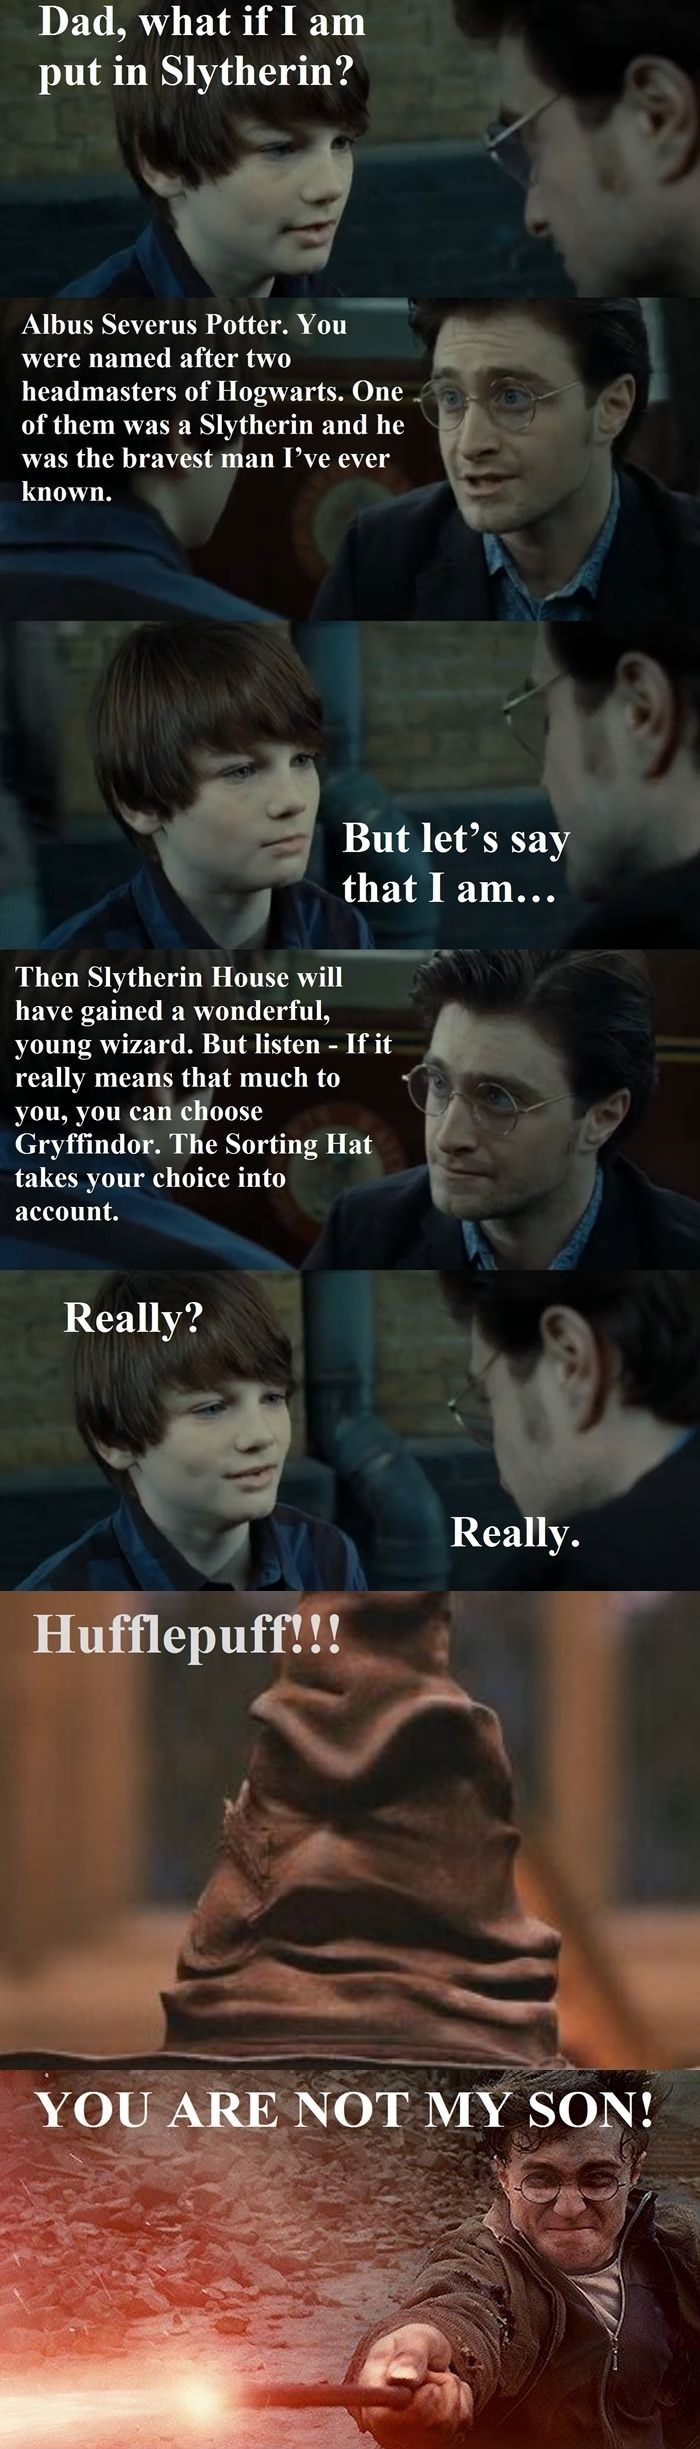 Raging Potter Senior  - funny pictures #funnypictures